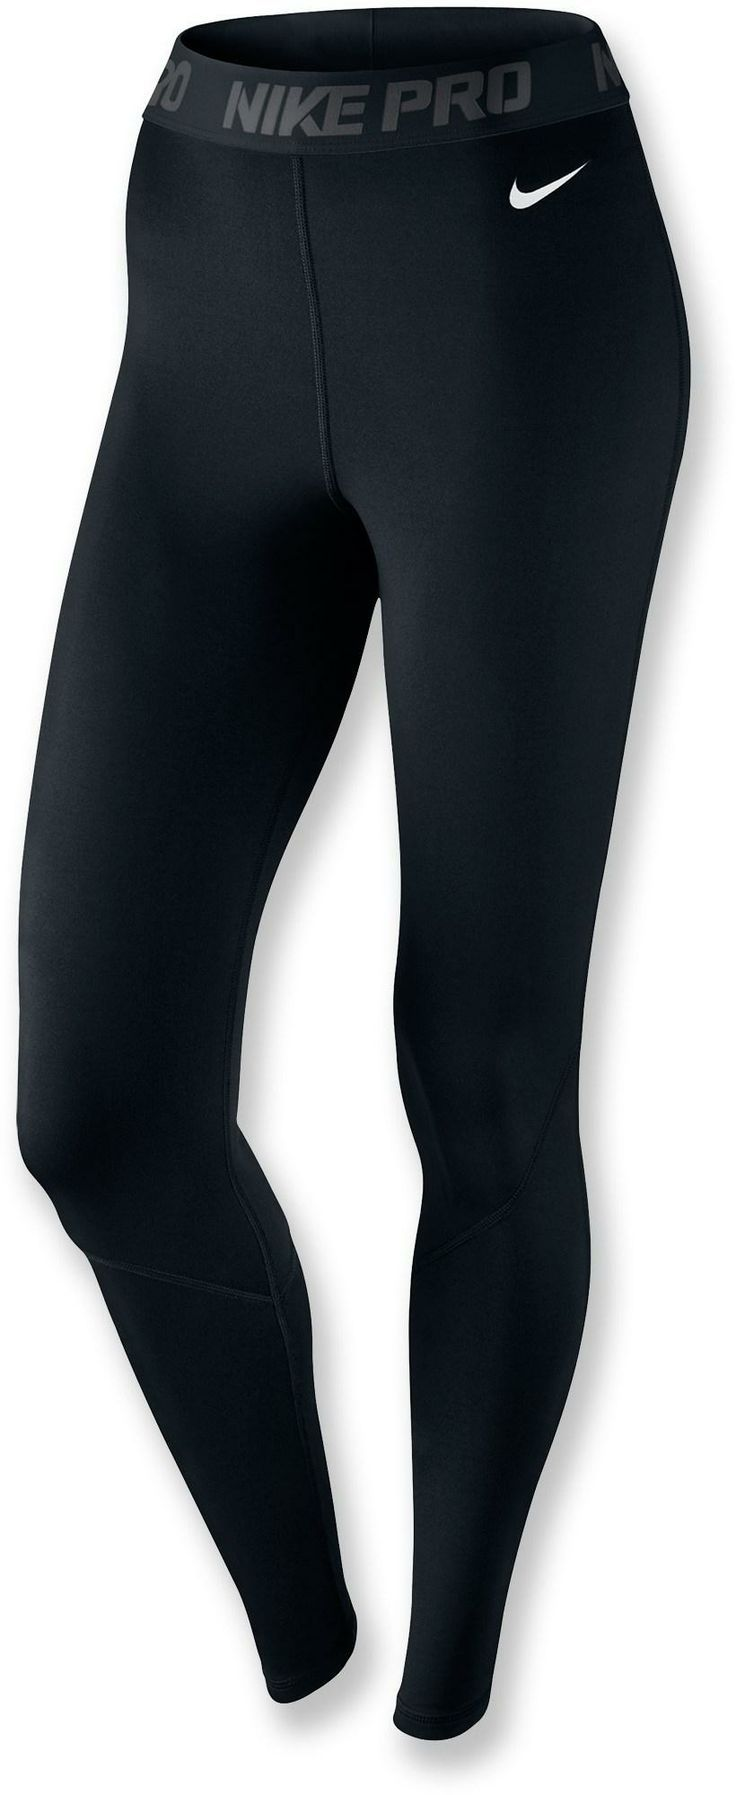 sale retailer 6d4aa 56bfe Perfect for cold weather runs. Nike Pro Hyperwarm Tights III - Womens.